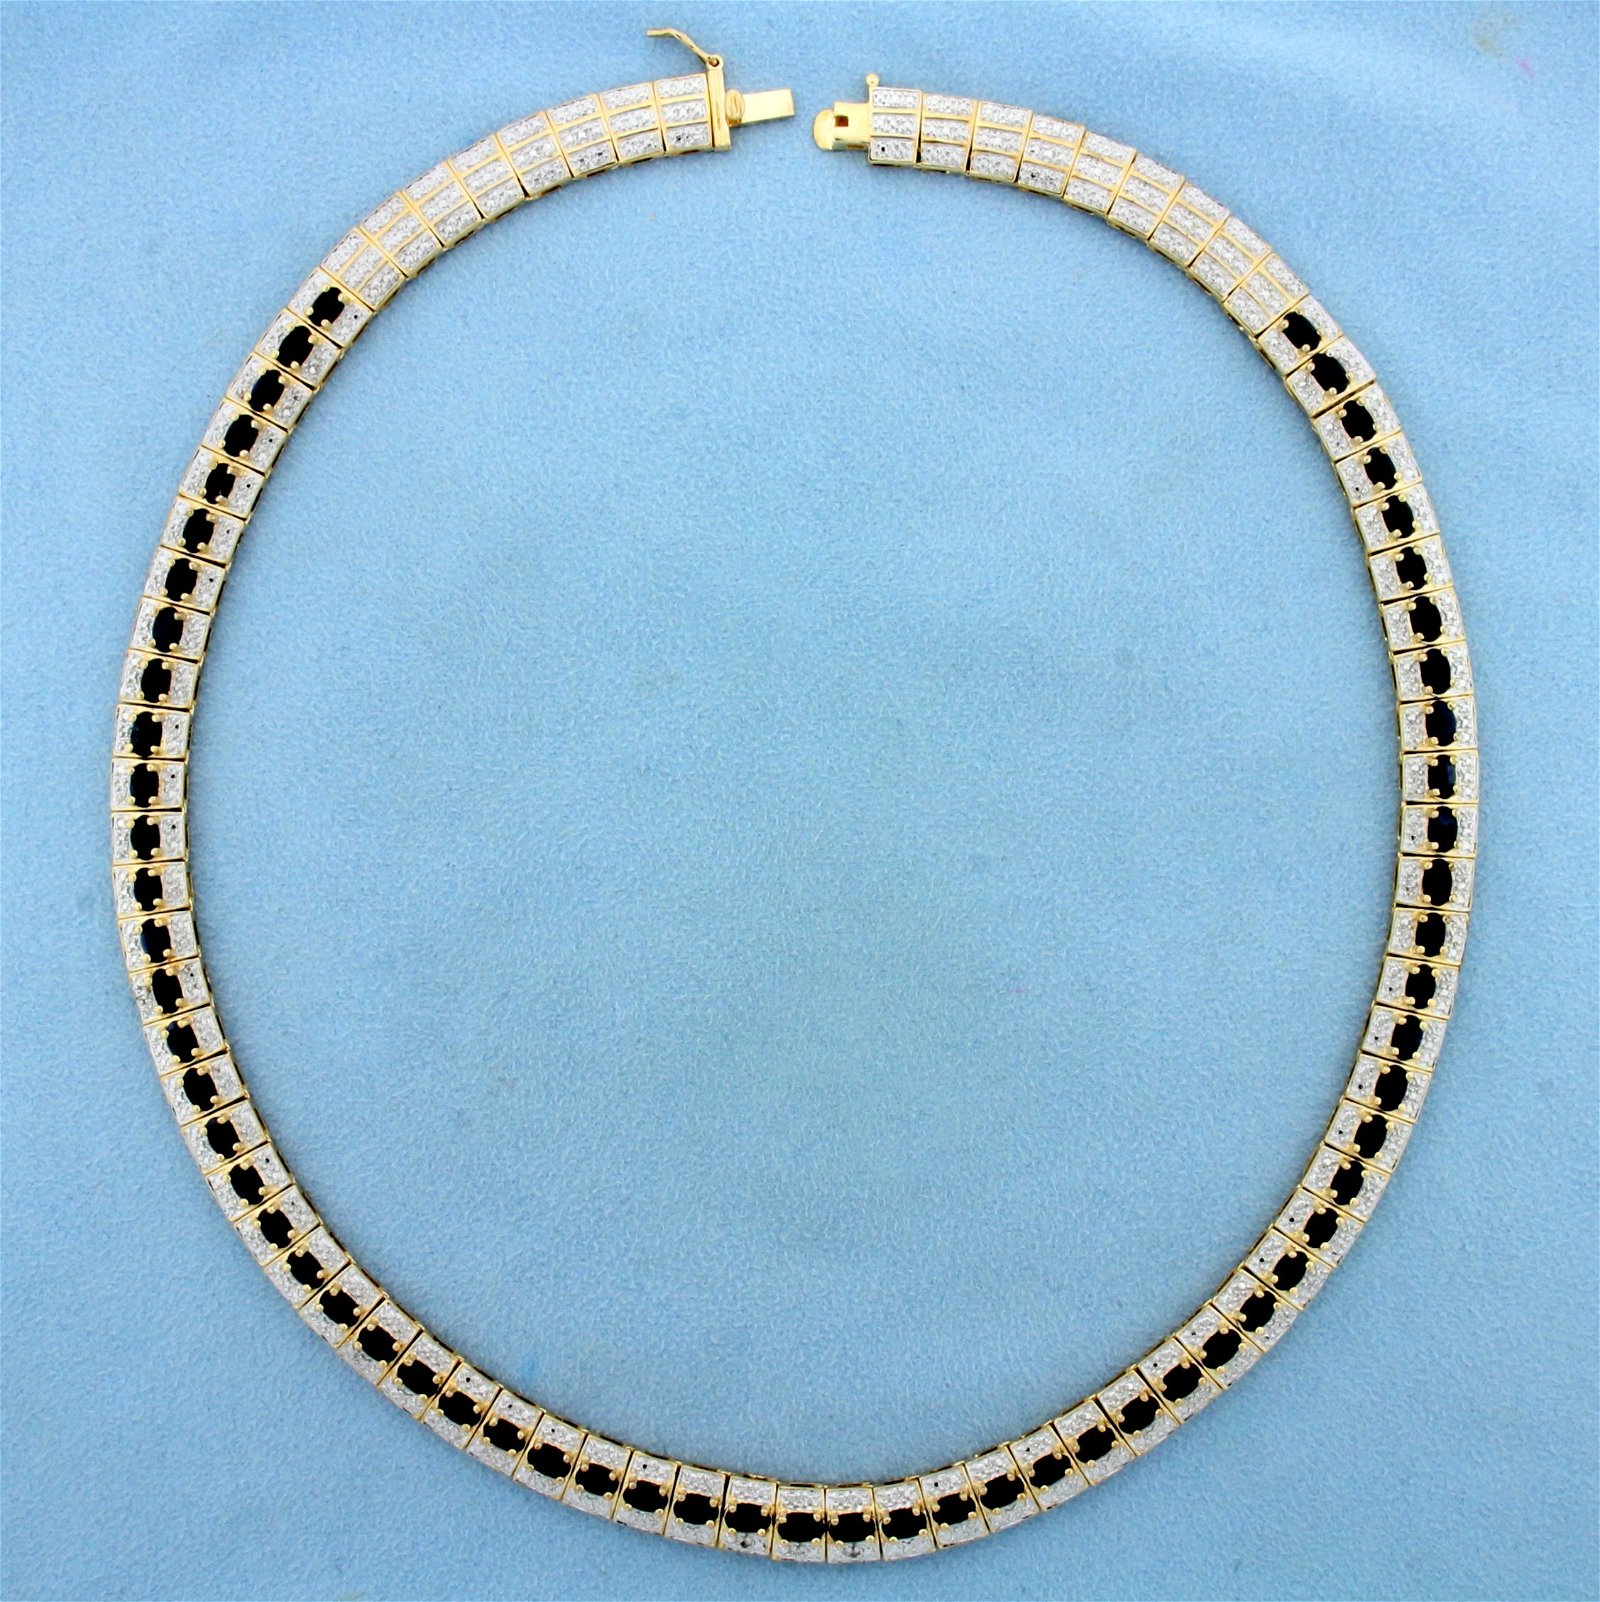 15ct TW Sapphire Necklace in Gold Plated Sterling